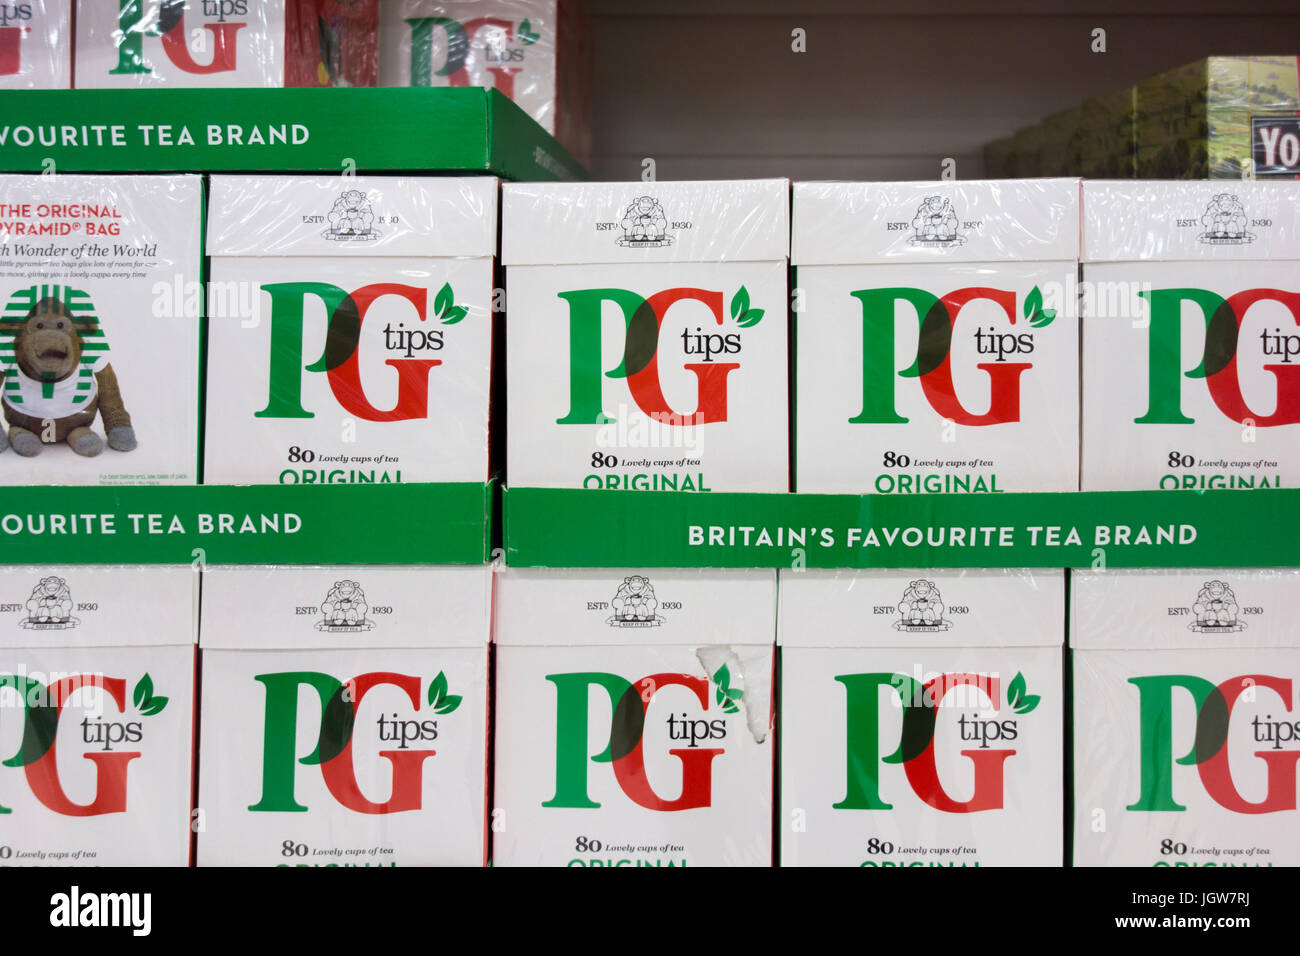 Packs of PG Tips tea for sale on a supermarket shelf in the UK - Stock Image